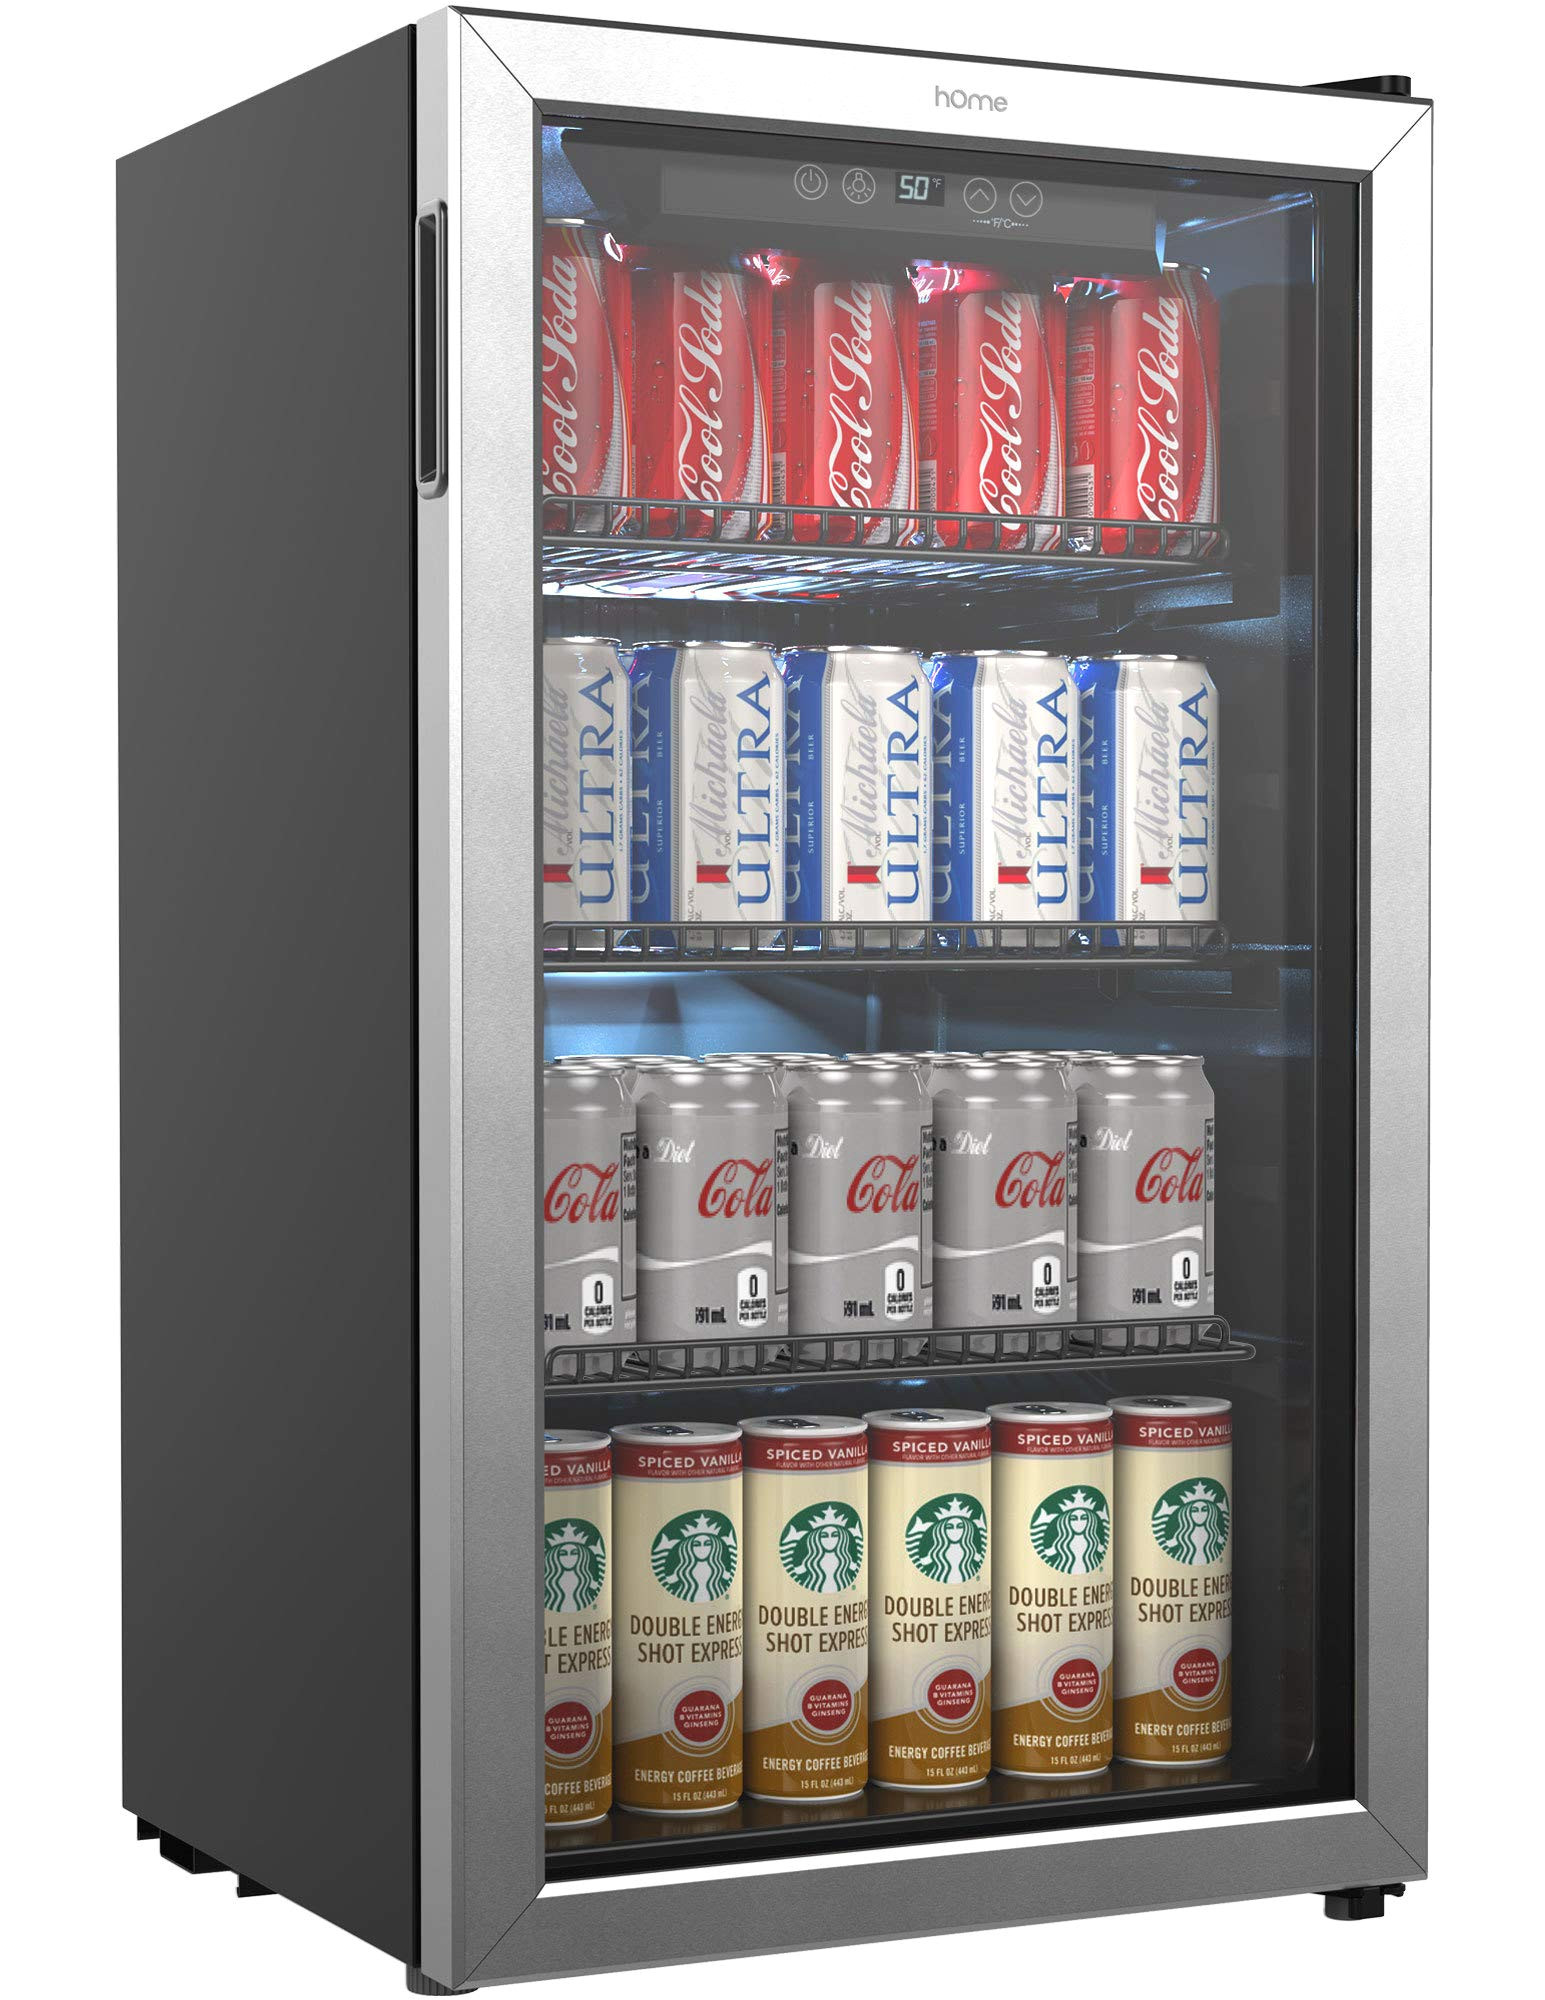 homelabs beverage refrigerator and cooler 120 can mini fridge with glass door for soda beer or wine small drink dispenser machine for office or bar with